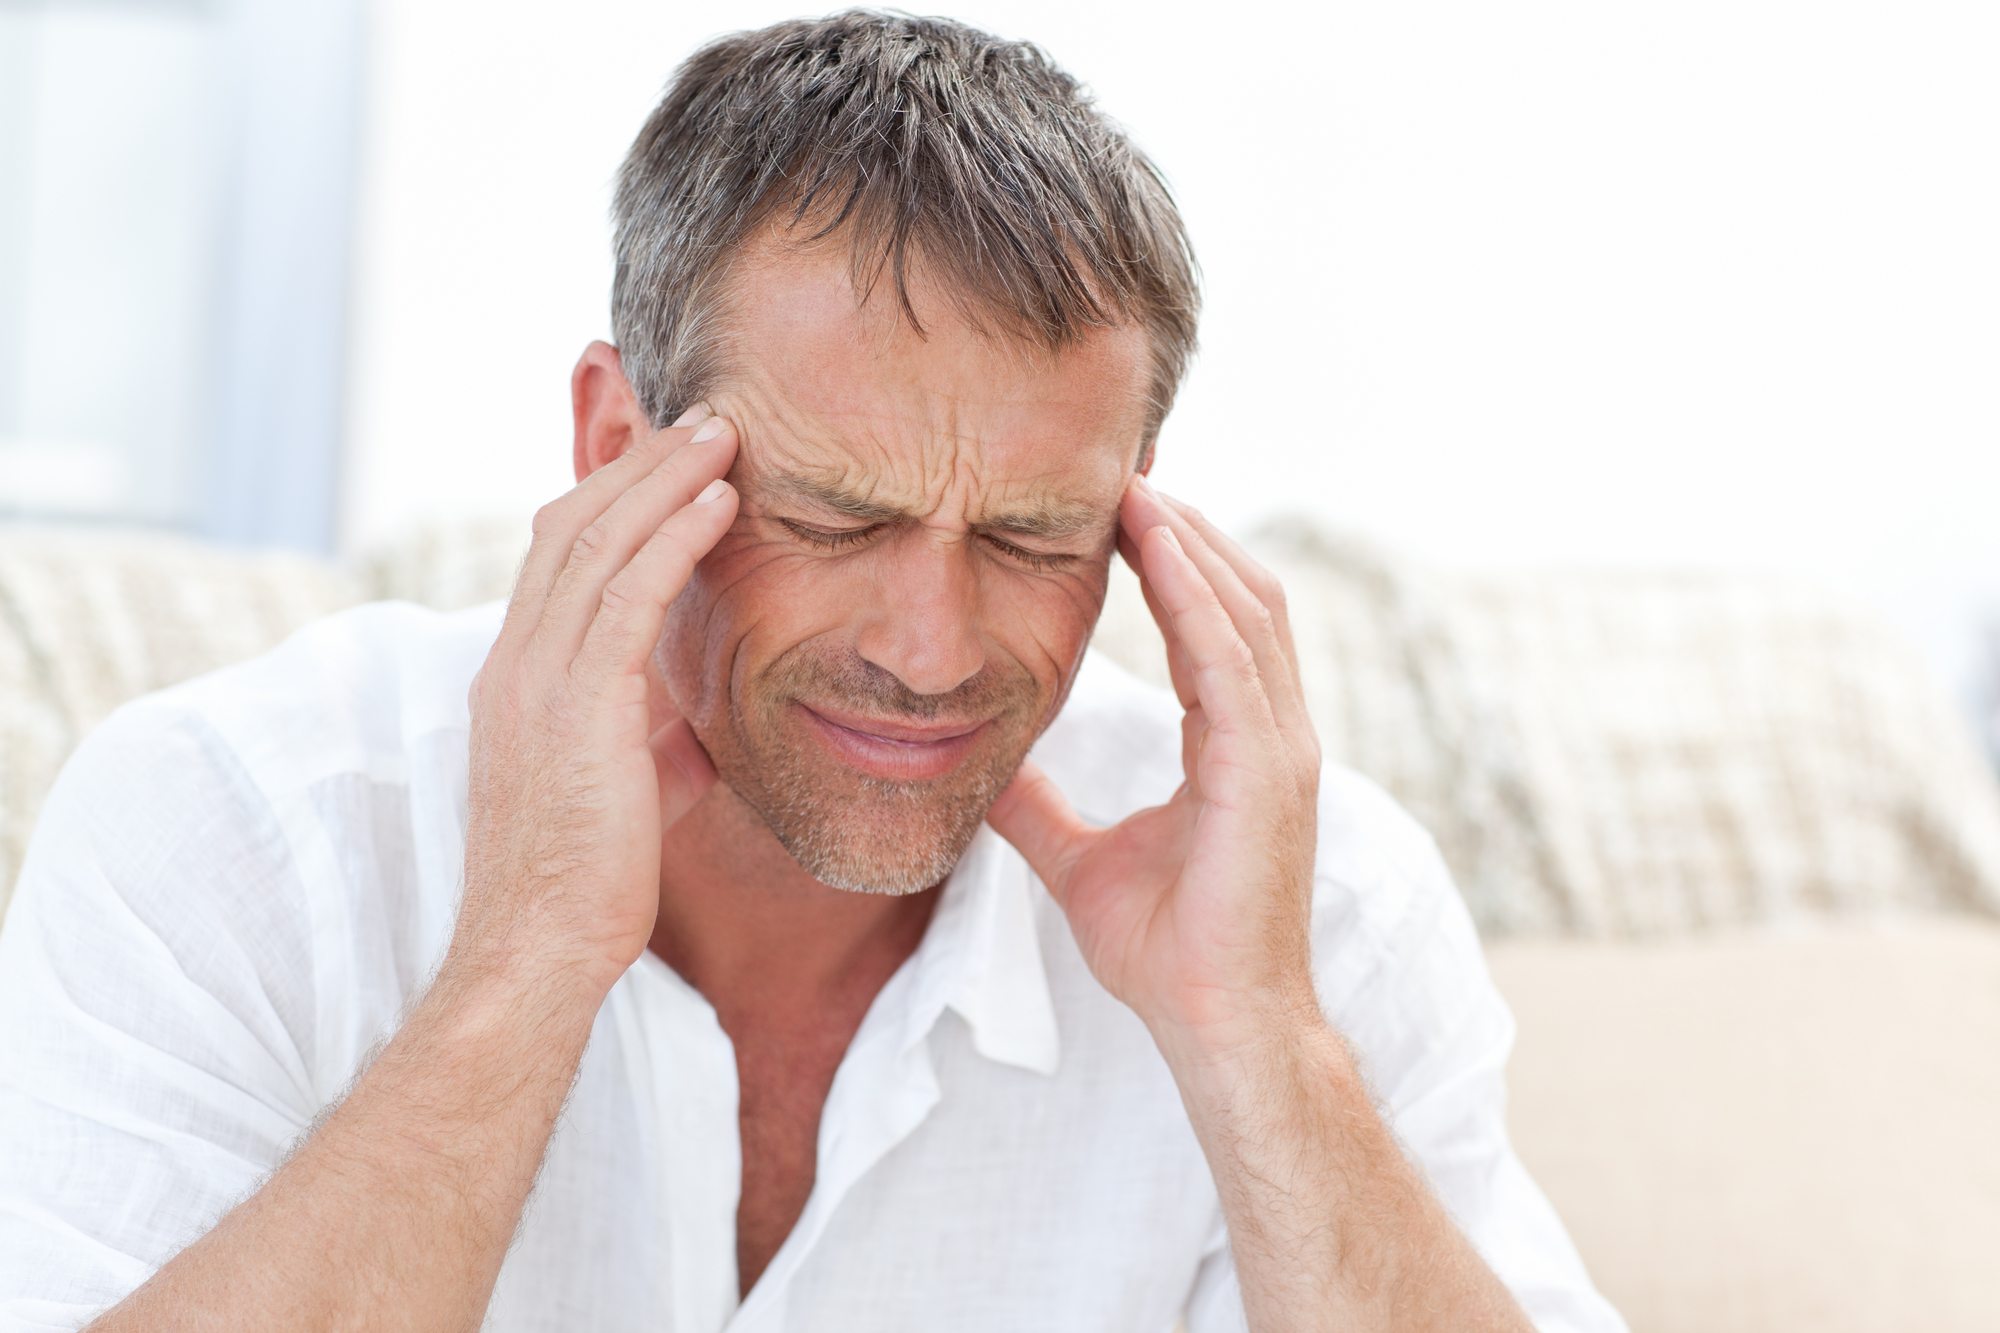 Depositphotos 10845010 l 2015 - Diet And Migraines. What's The Connection?